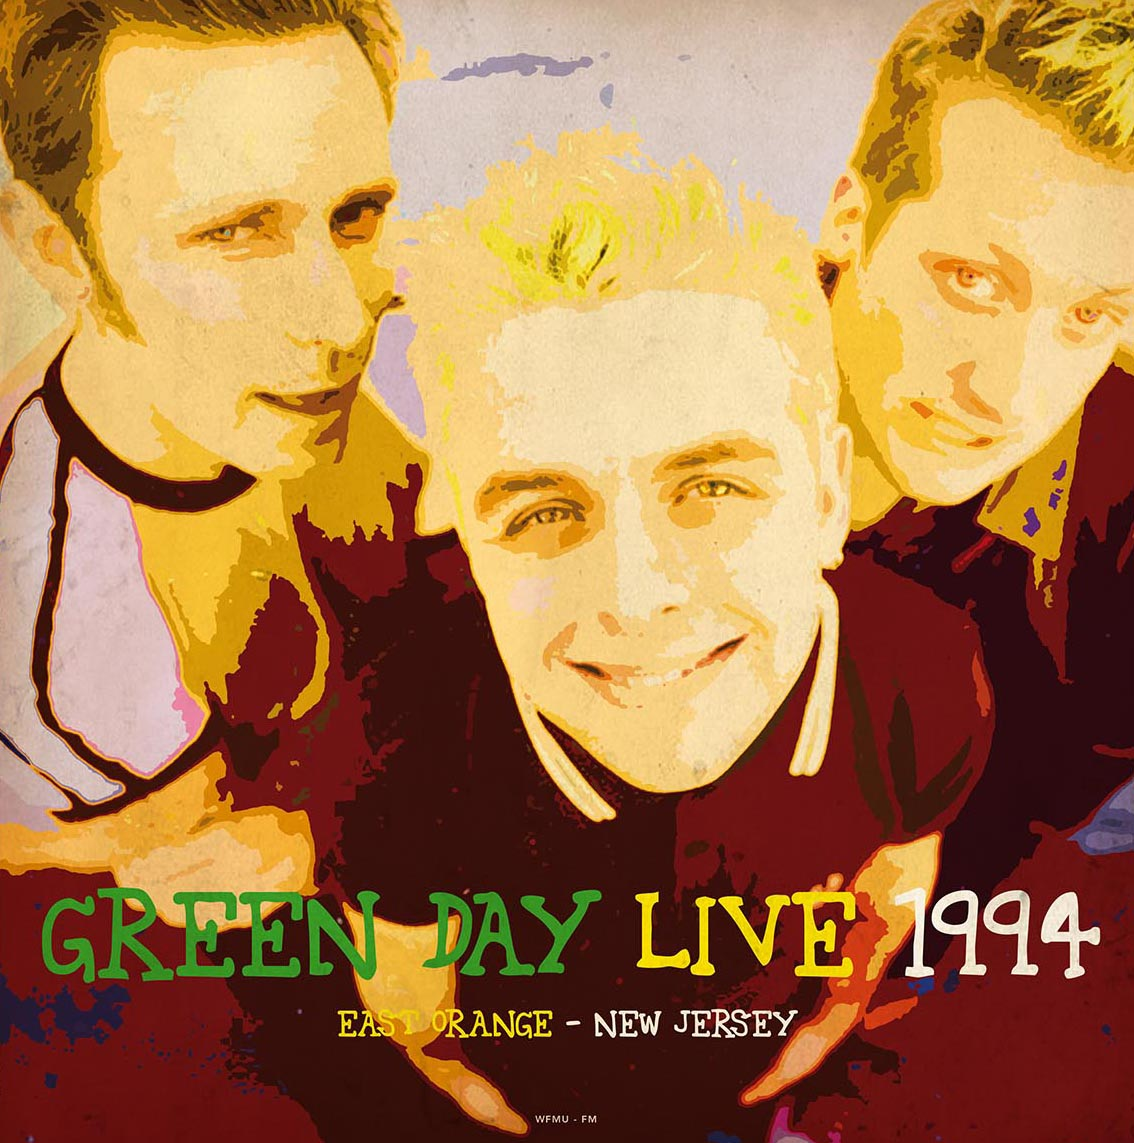 Green Day/LIVE 1994 WFMU-FM (180g) LP